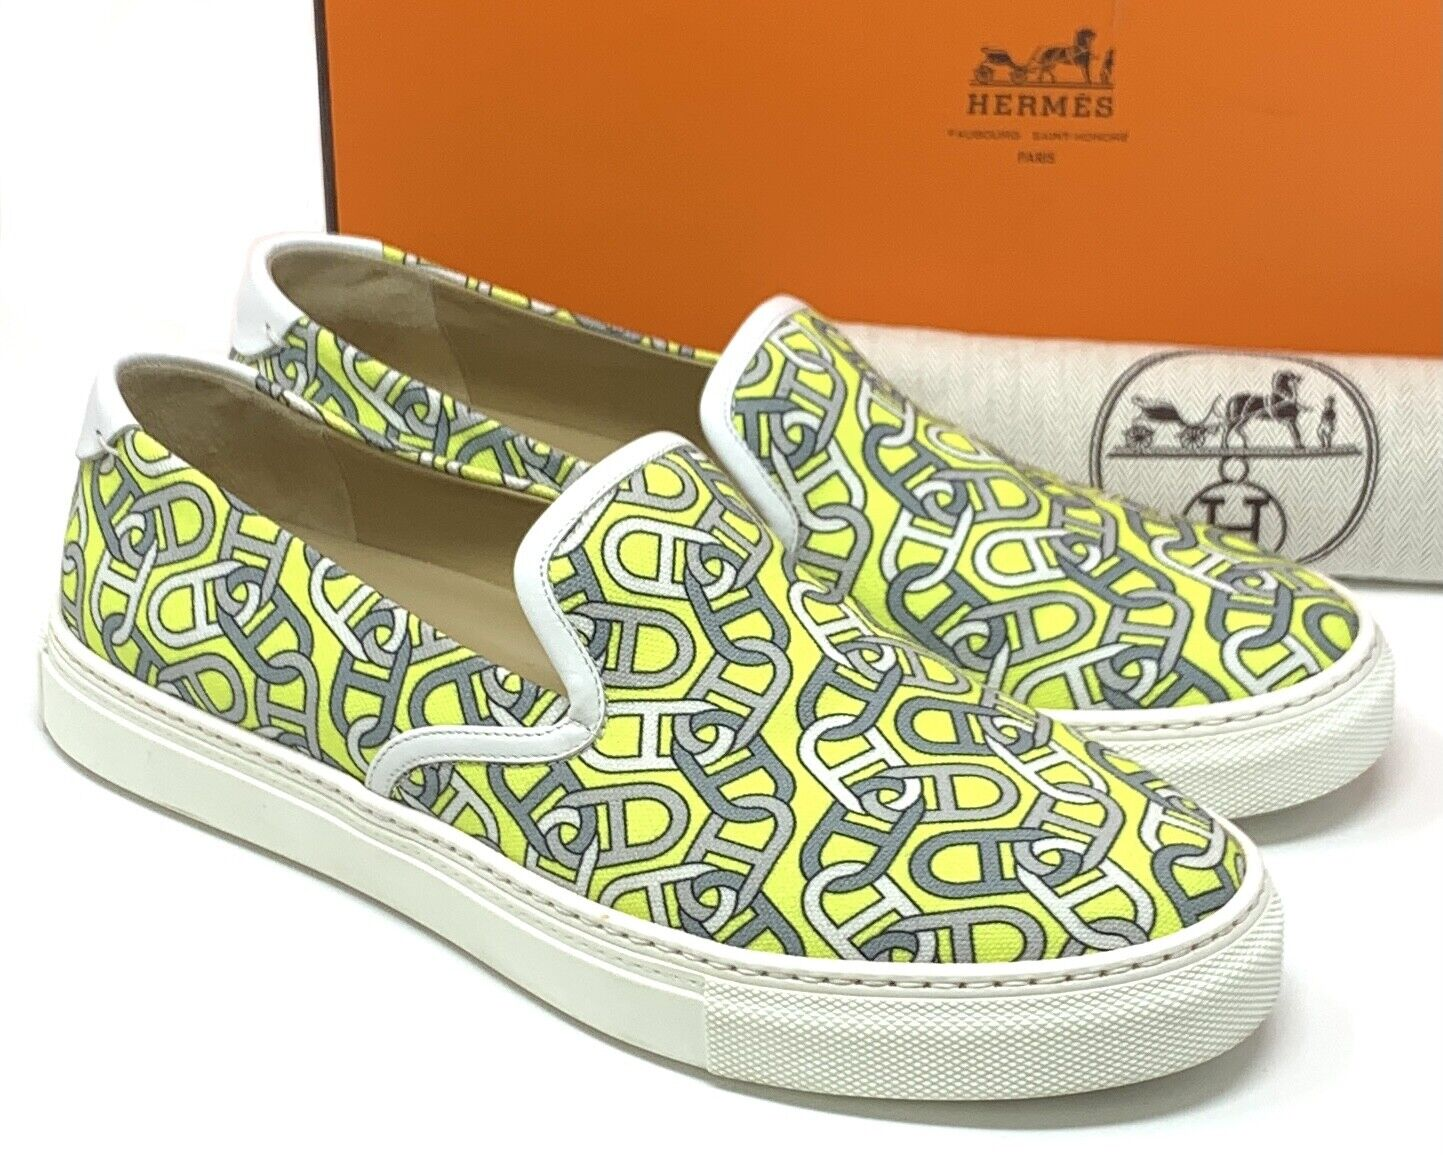 Authentique hermes chaine d ancre slip-on chaussures baskets #41 us 8 vert rank